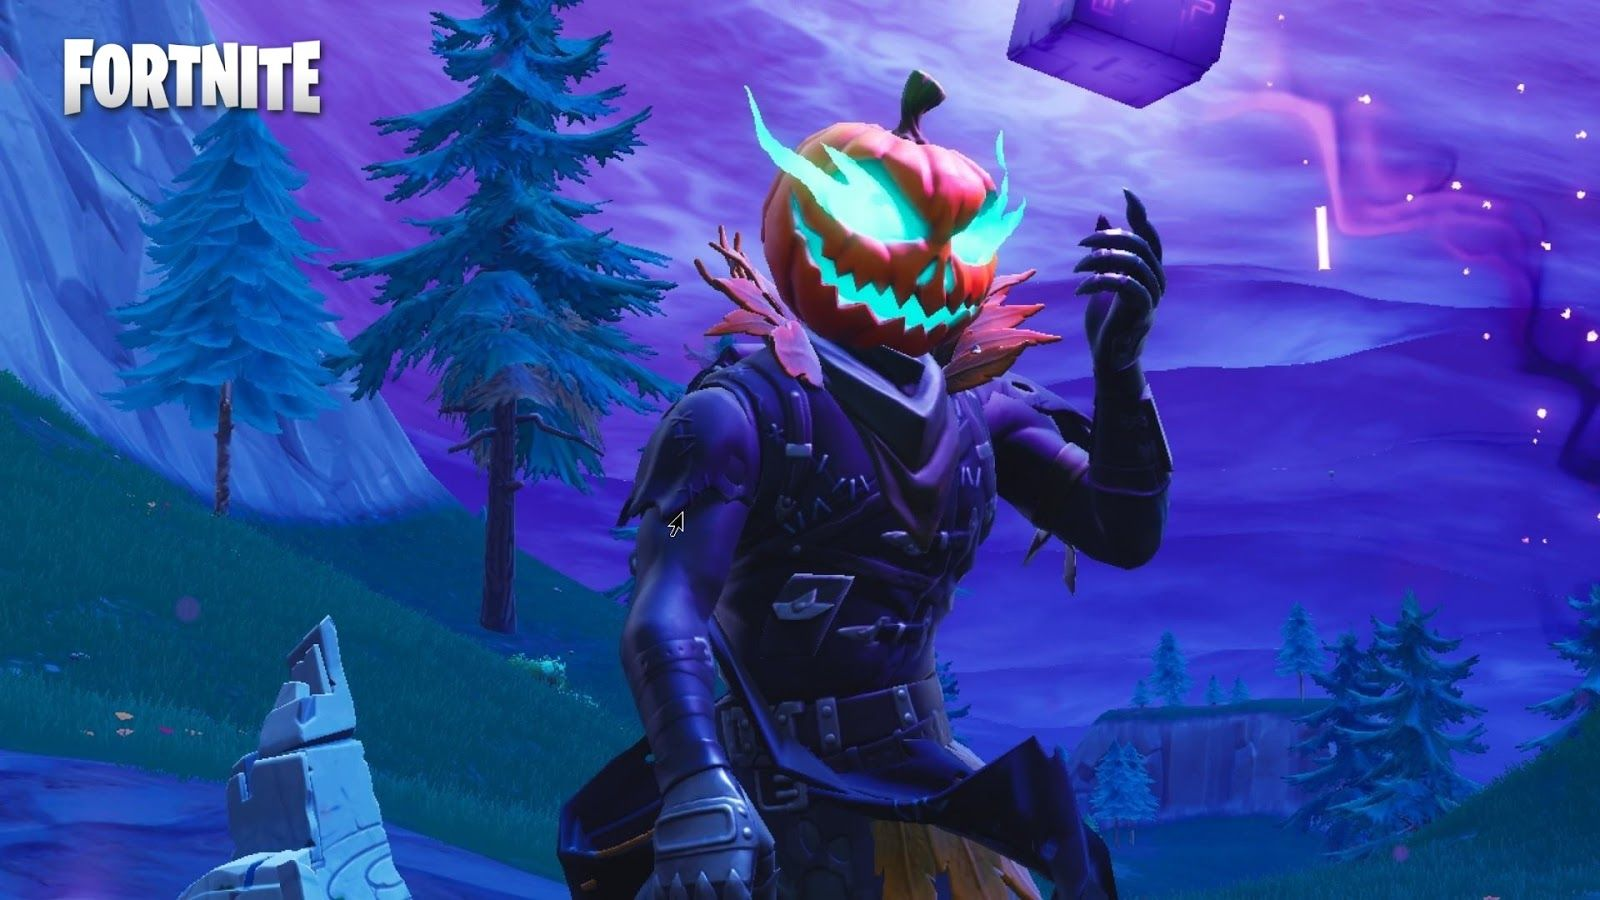 Fortnite Cool Wallpapers HD Desktop Background images wallpapers 1600x900